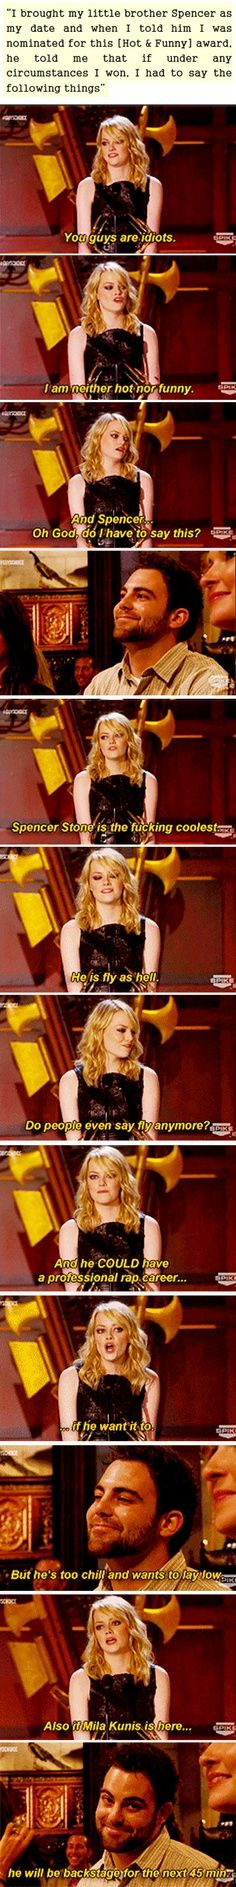 Emma Stone wins Best Sister of the Year award.